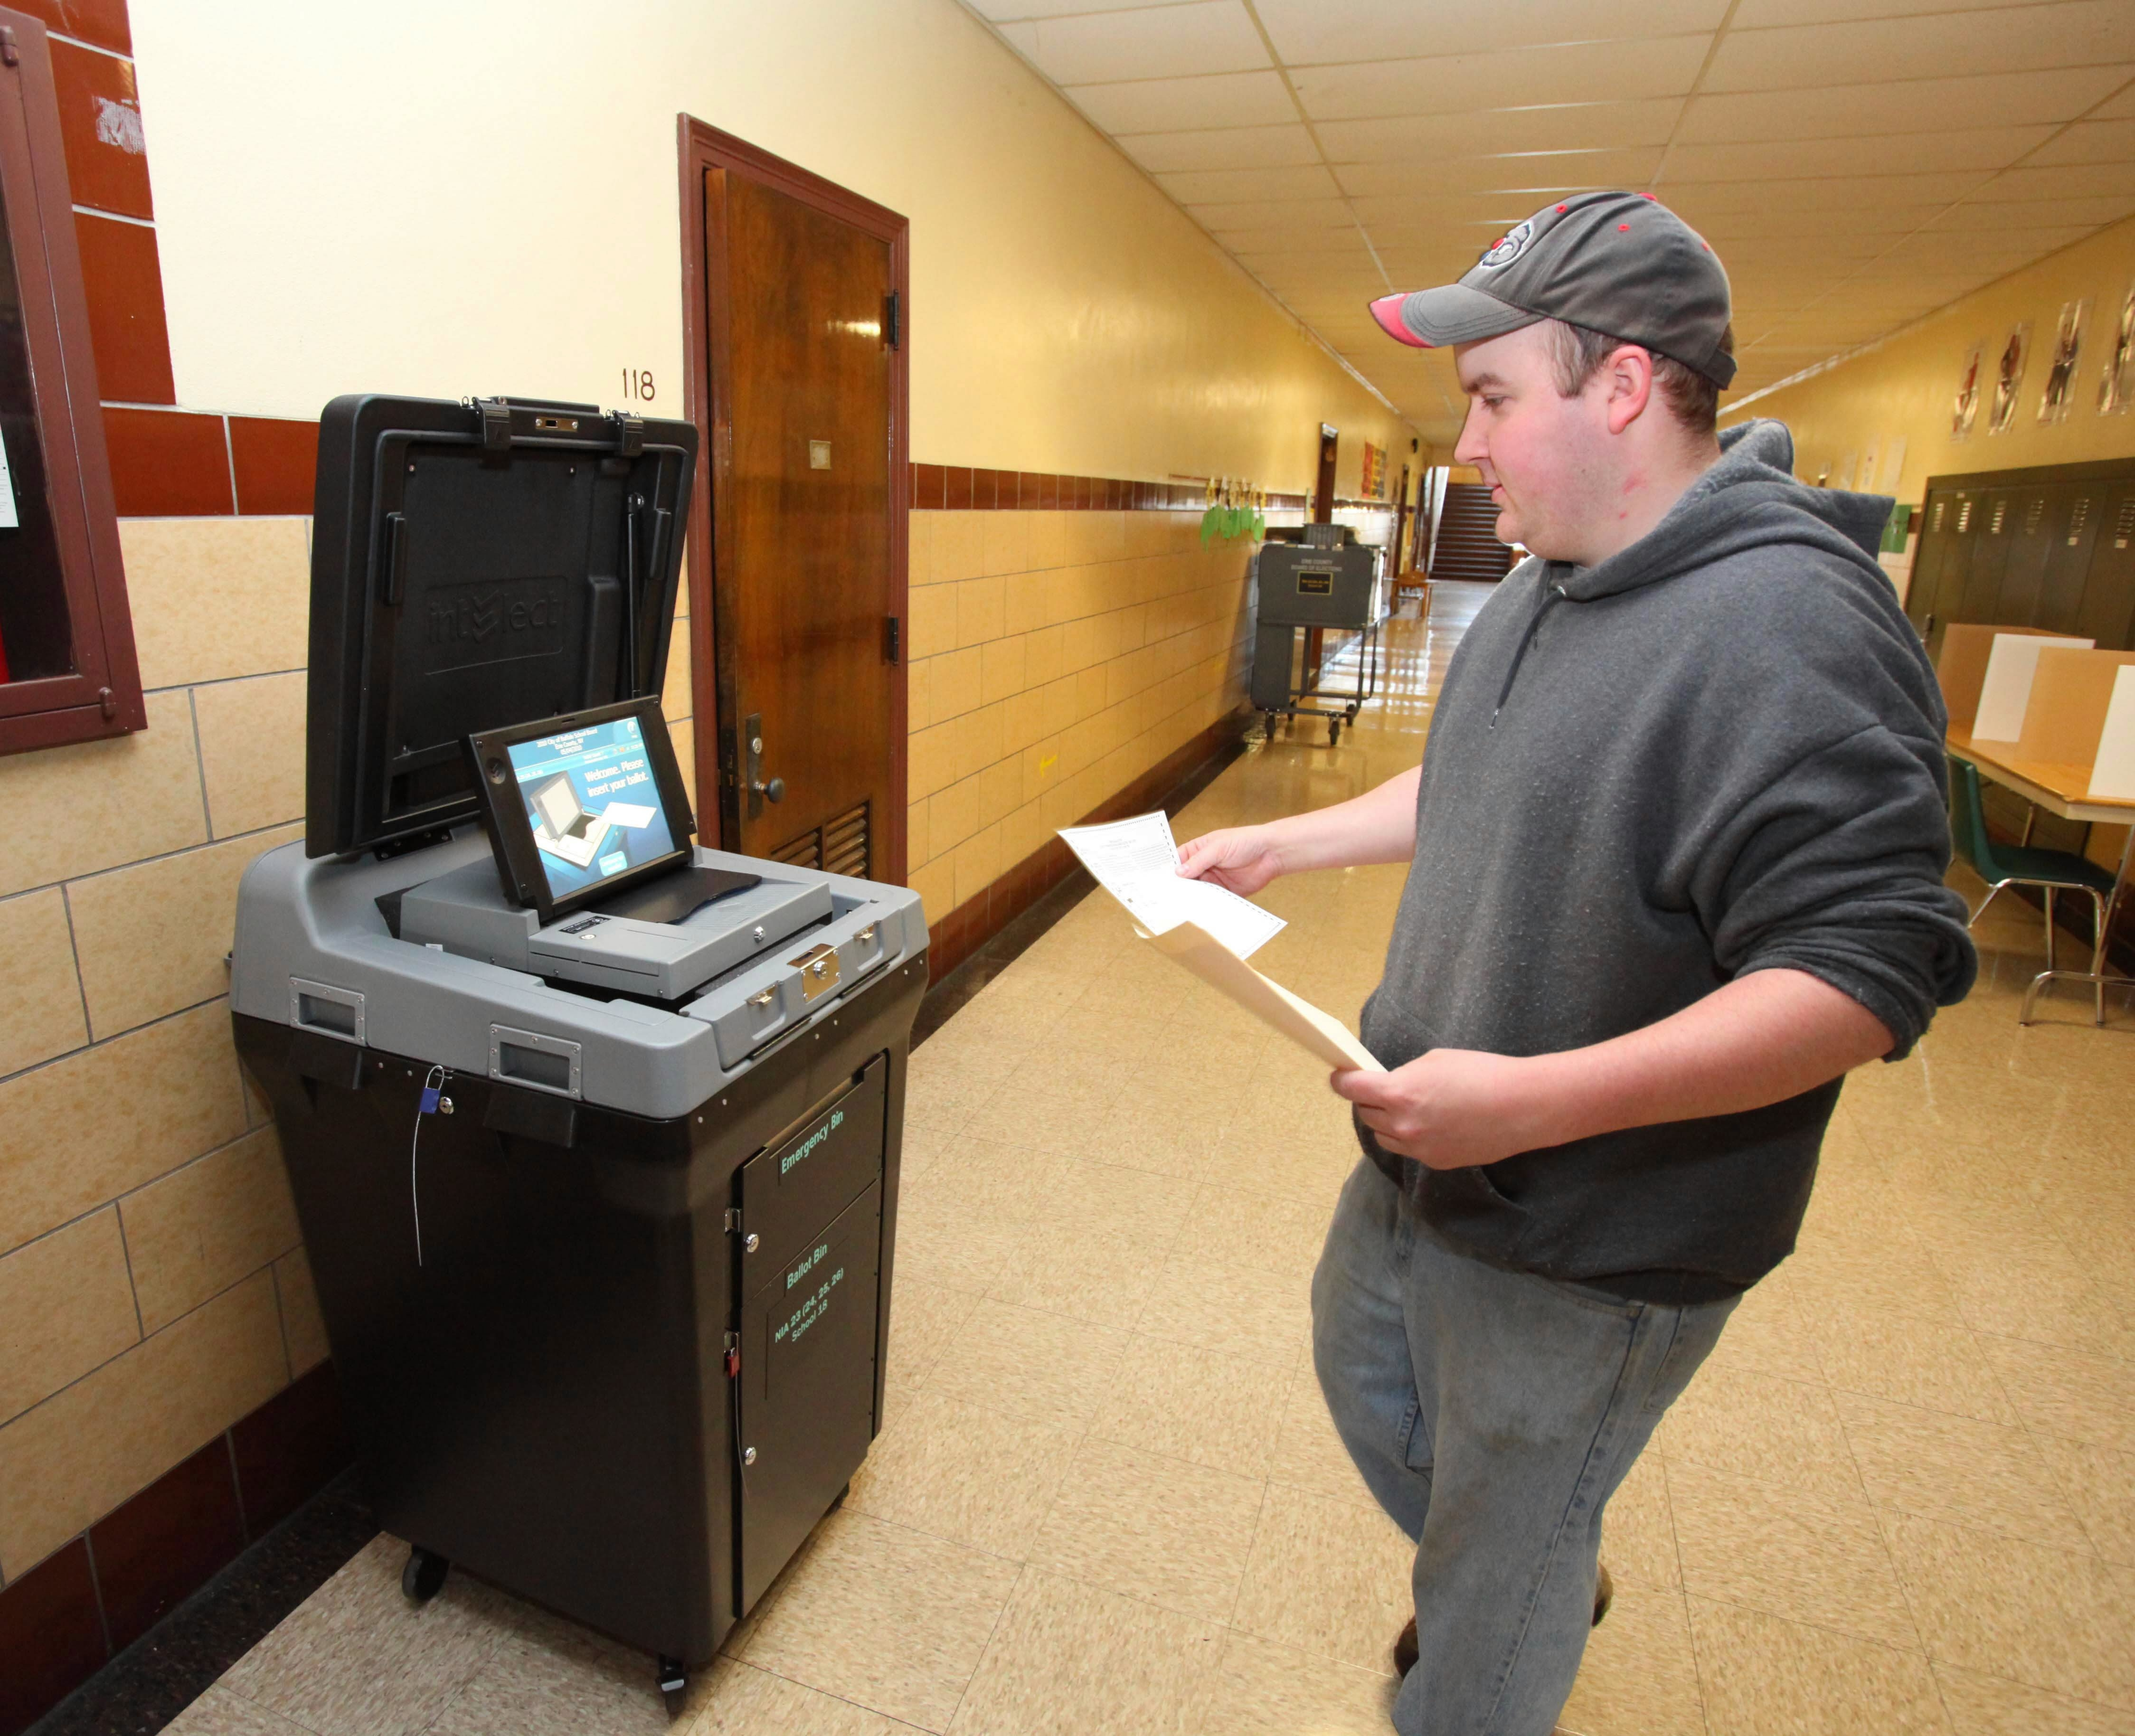 With three weeks left before the election for Buffalo School Board, some activities behind the scenes are raising questions about candidates' agendas. In this 2010 file photo, Rich Perry of Buffalo casts his vote in the Buffalo School Board election at School 18 on Hampshire Avenue. (Buffalo News file photo)